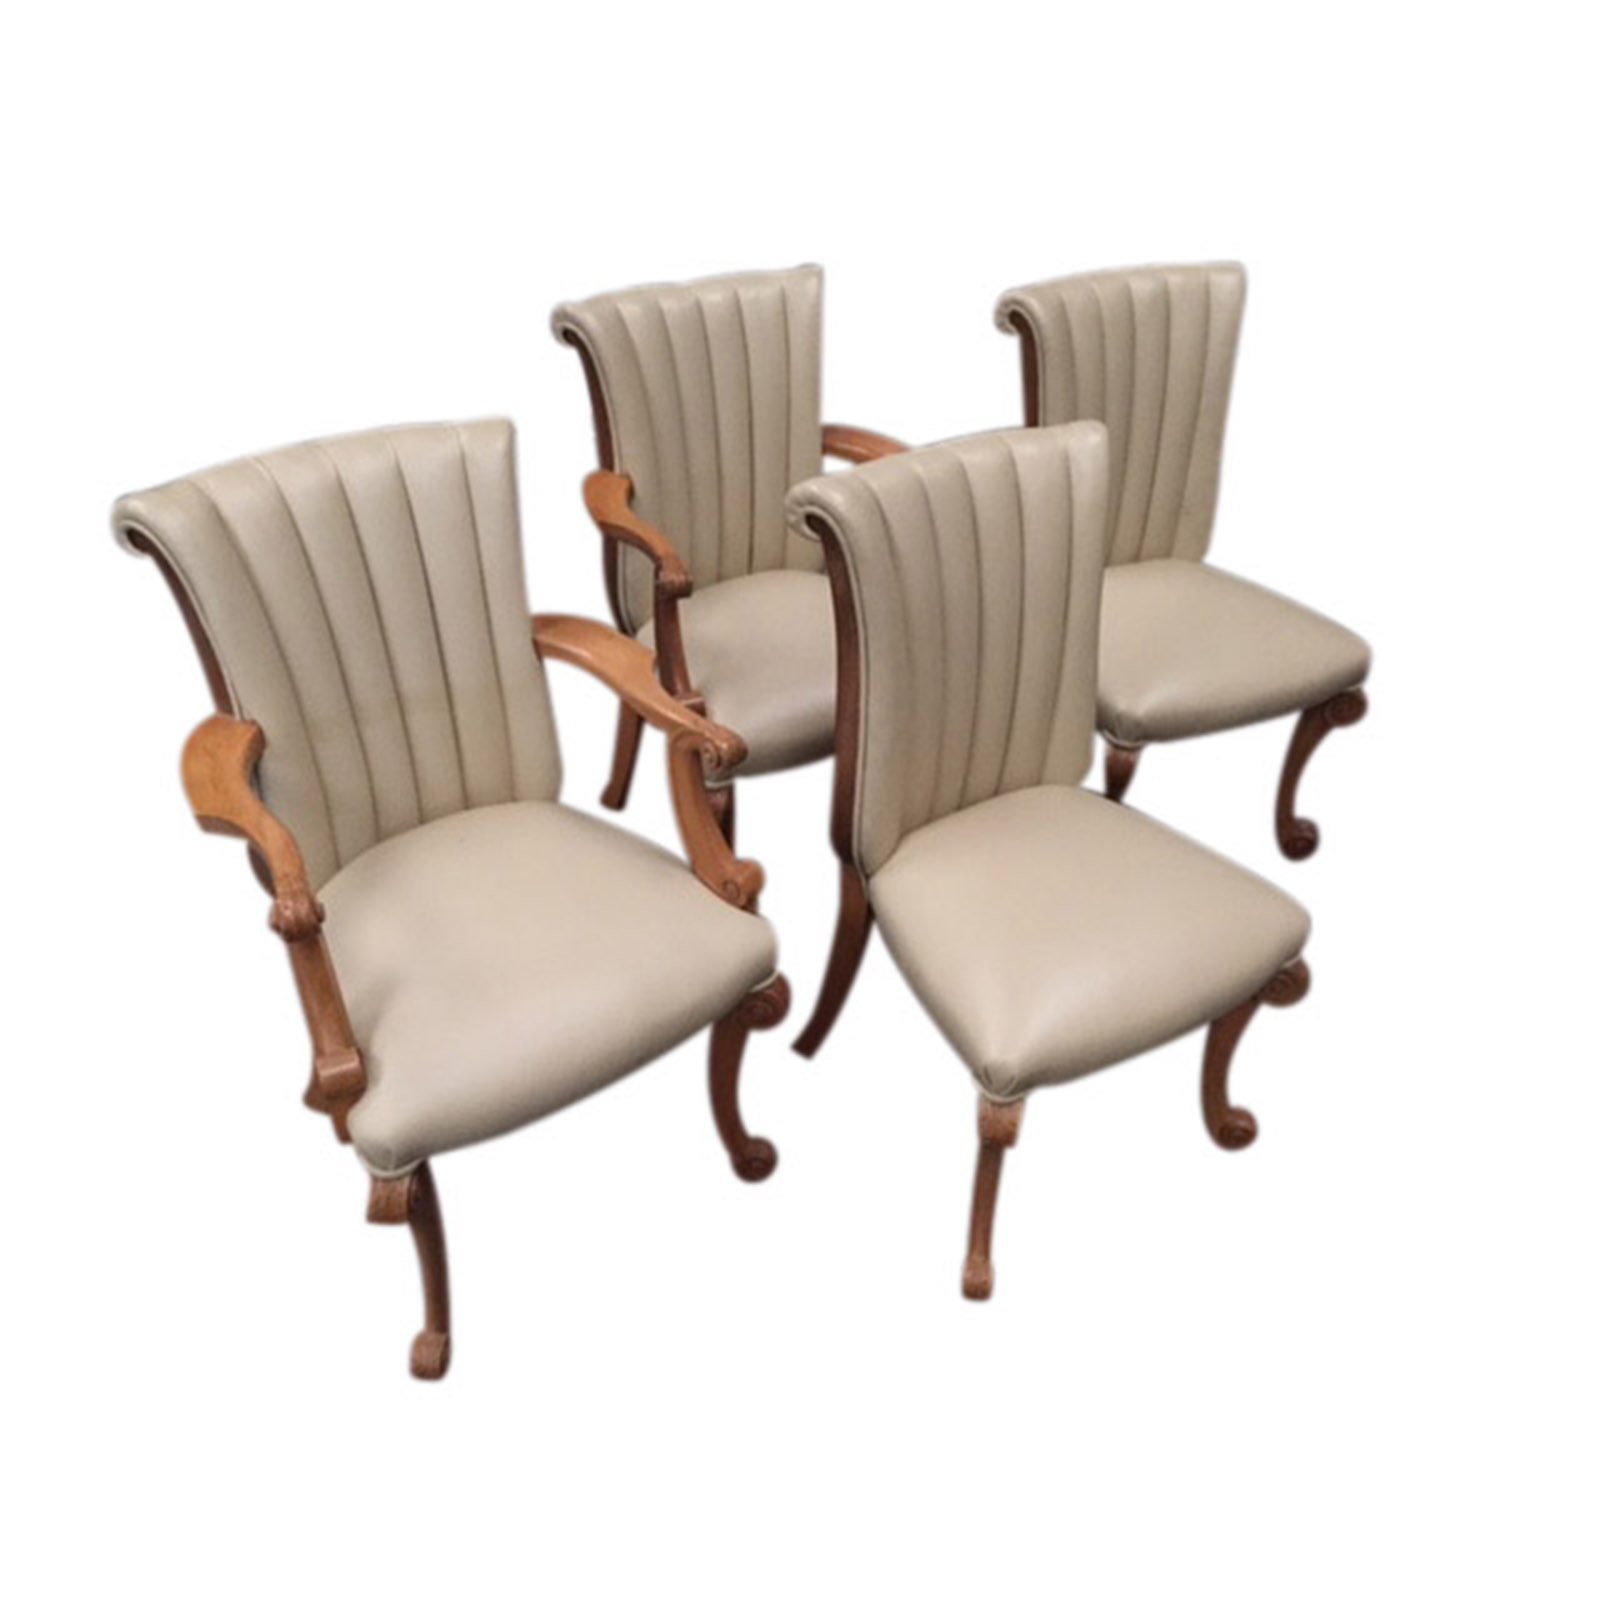 A QUALITY SET OF 6 ART DECO DINING CHAIRS